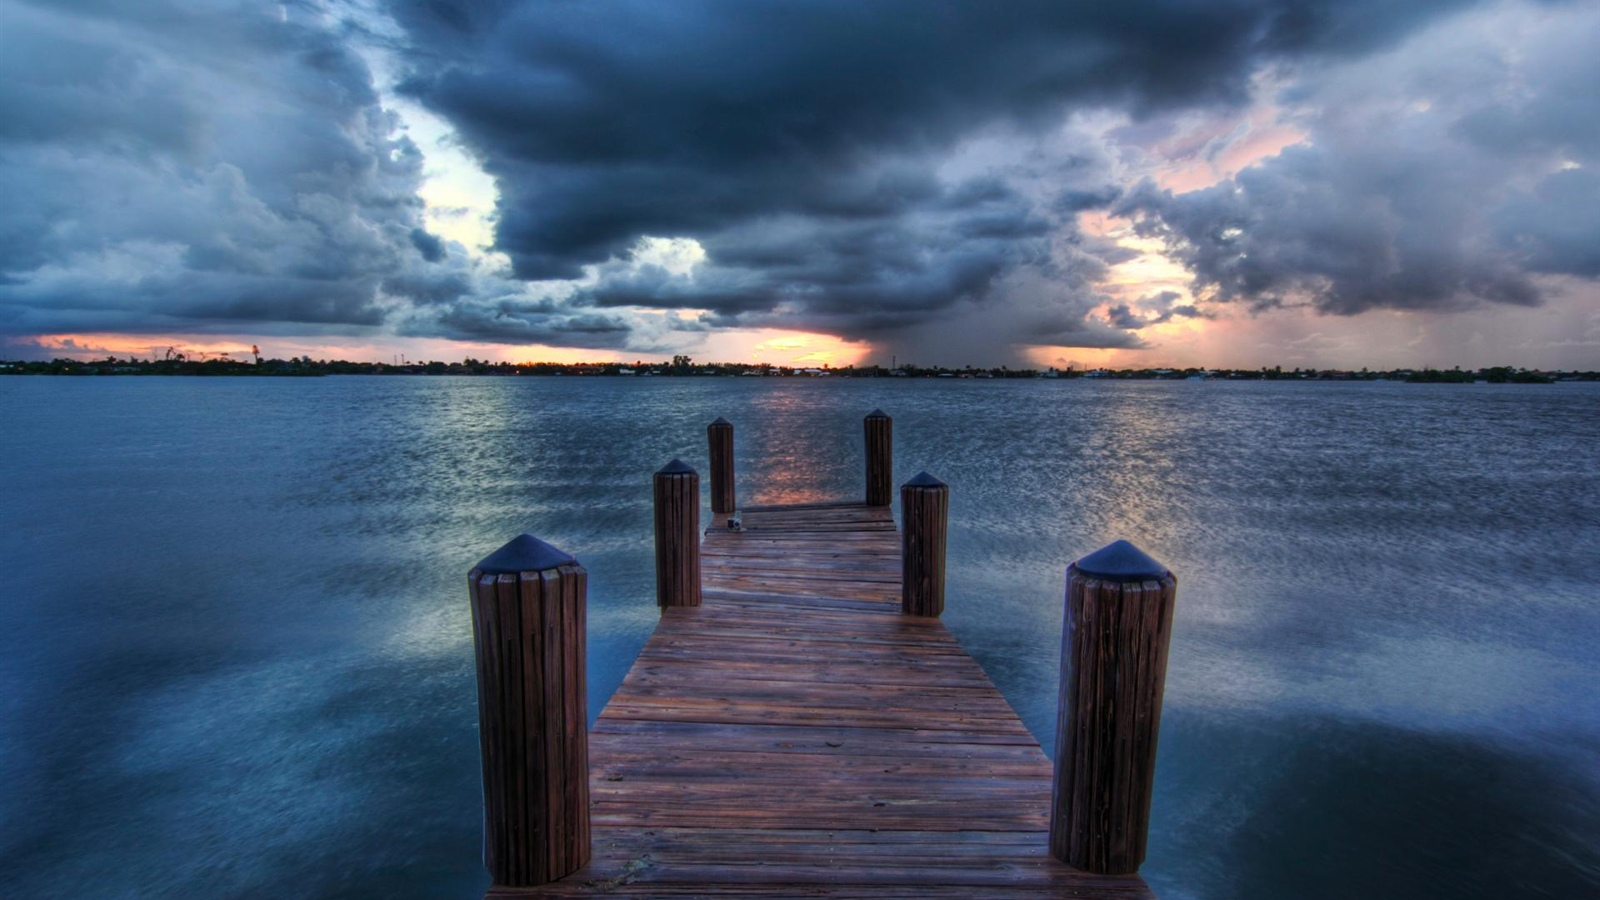 Pier, sea, clouds, dusk 1600x900 wallpaper